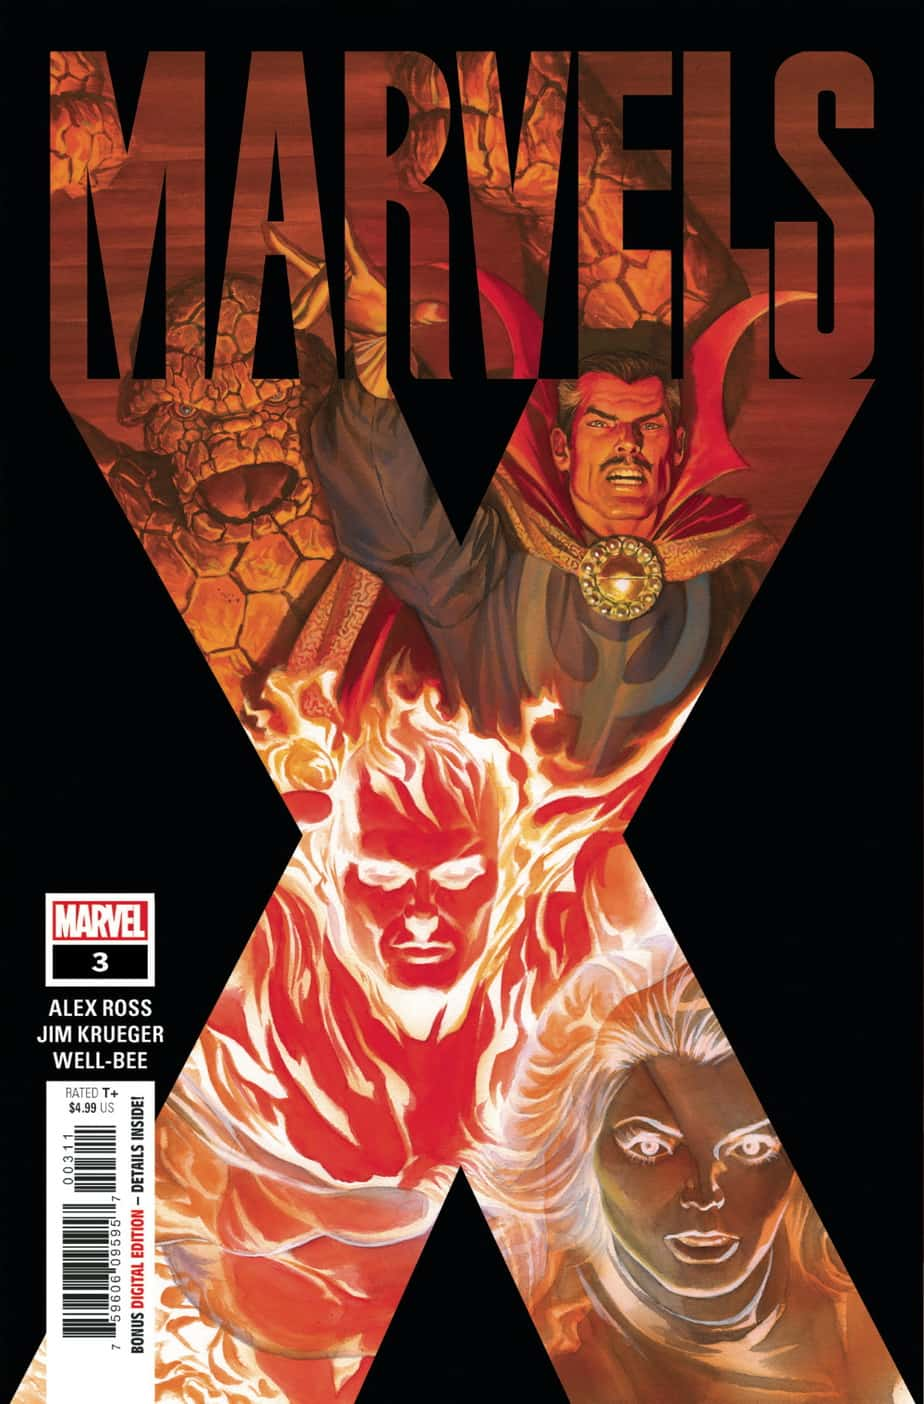 MARVELS X #3 - Cover A